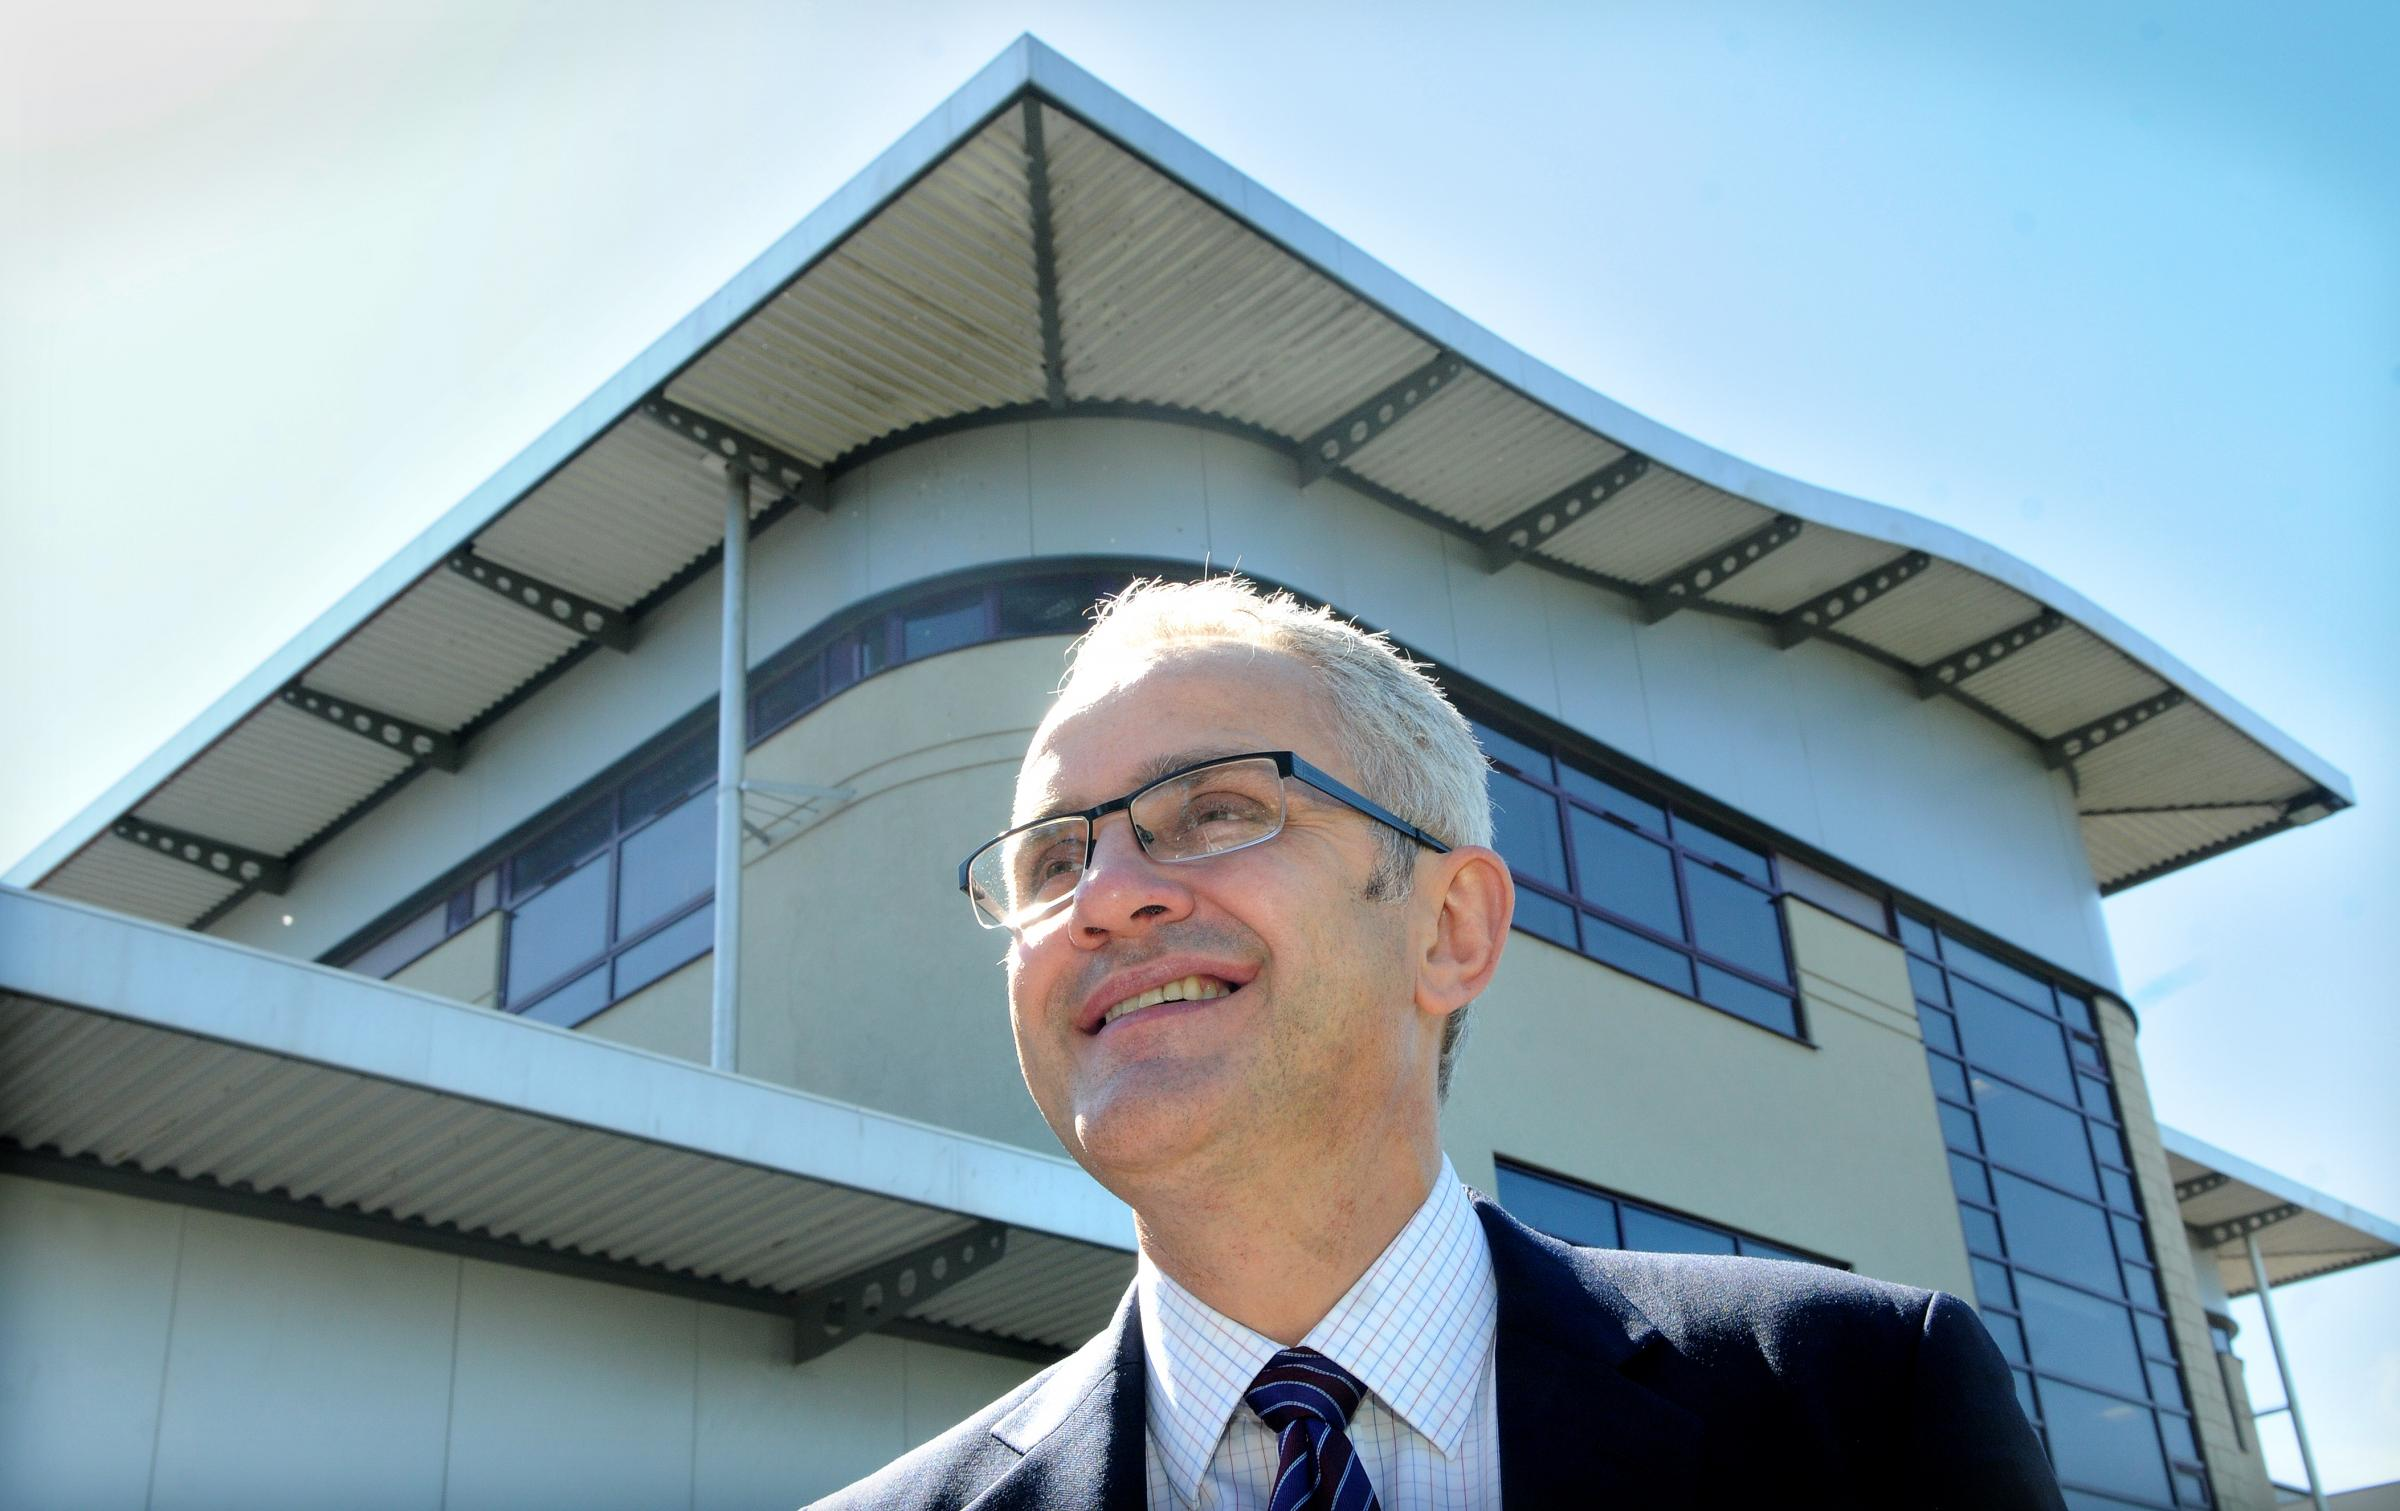 Huntington School head John Tomsett